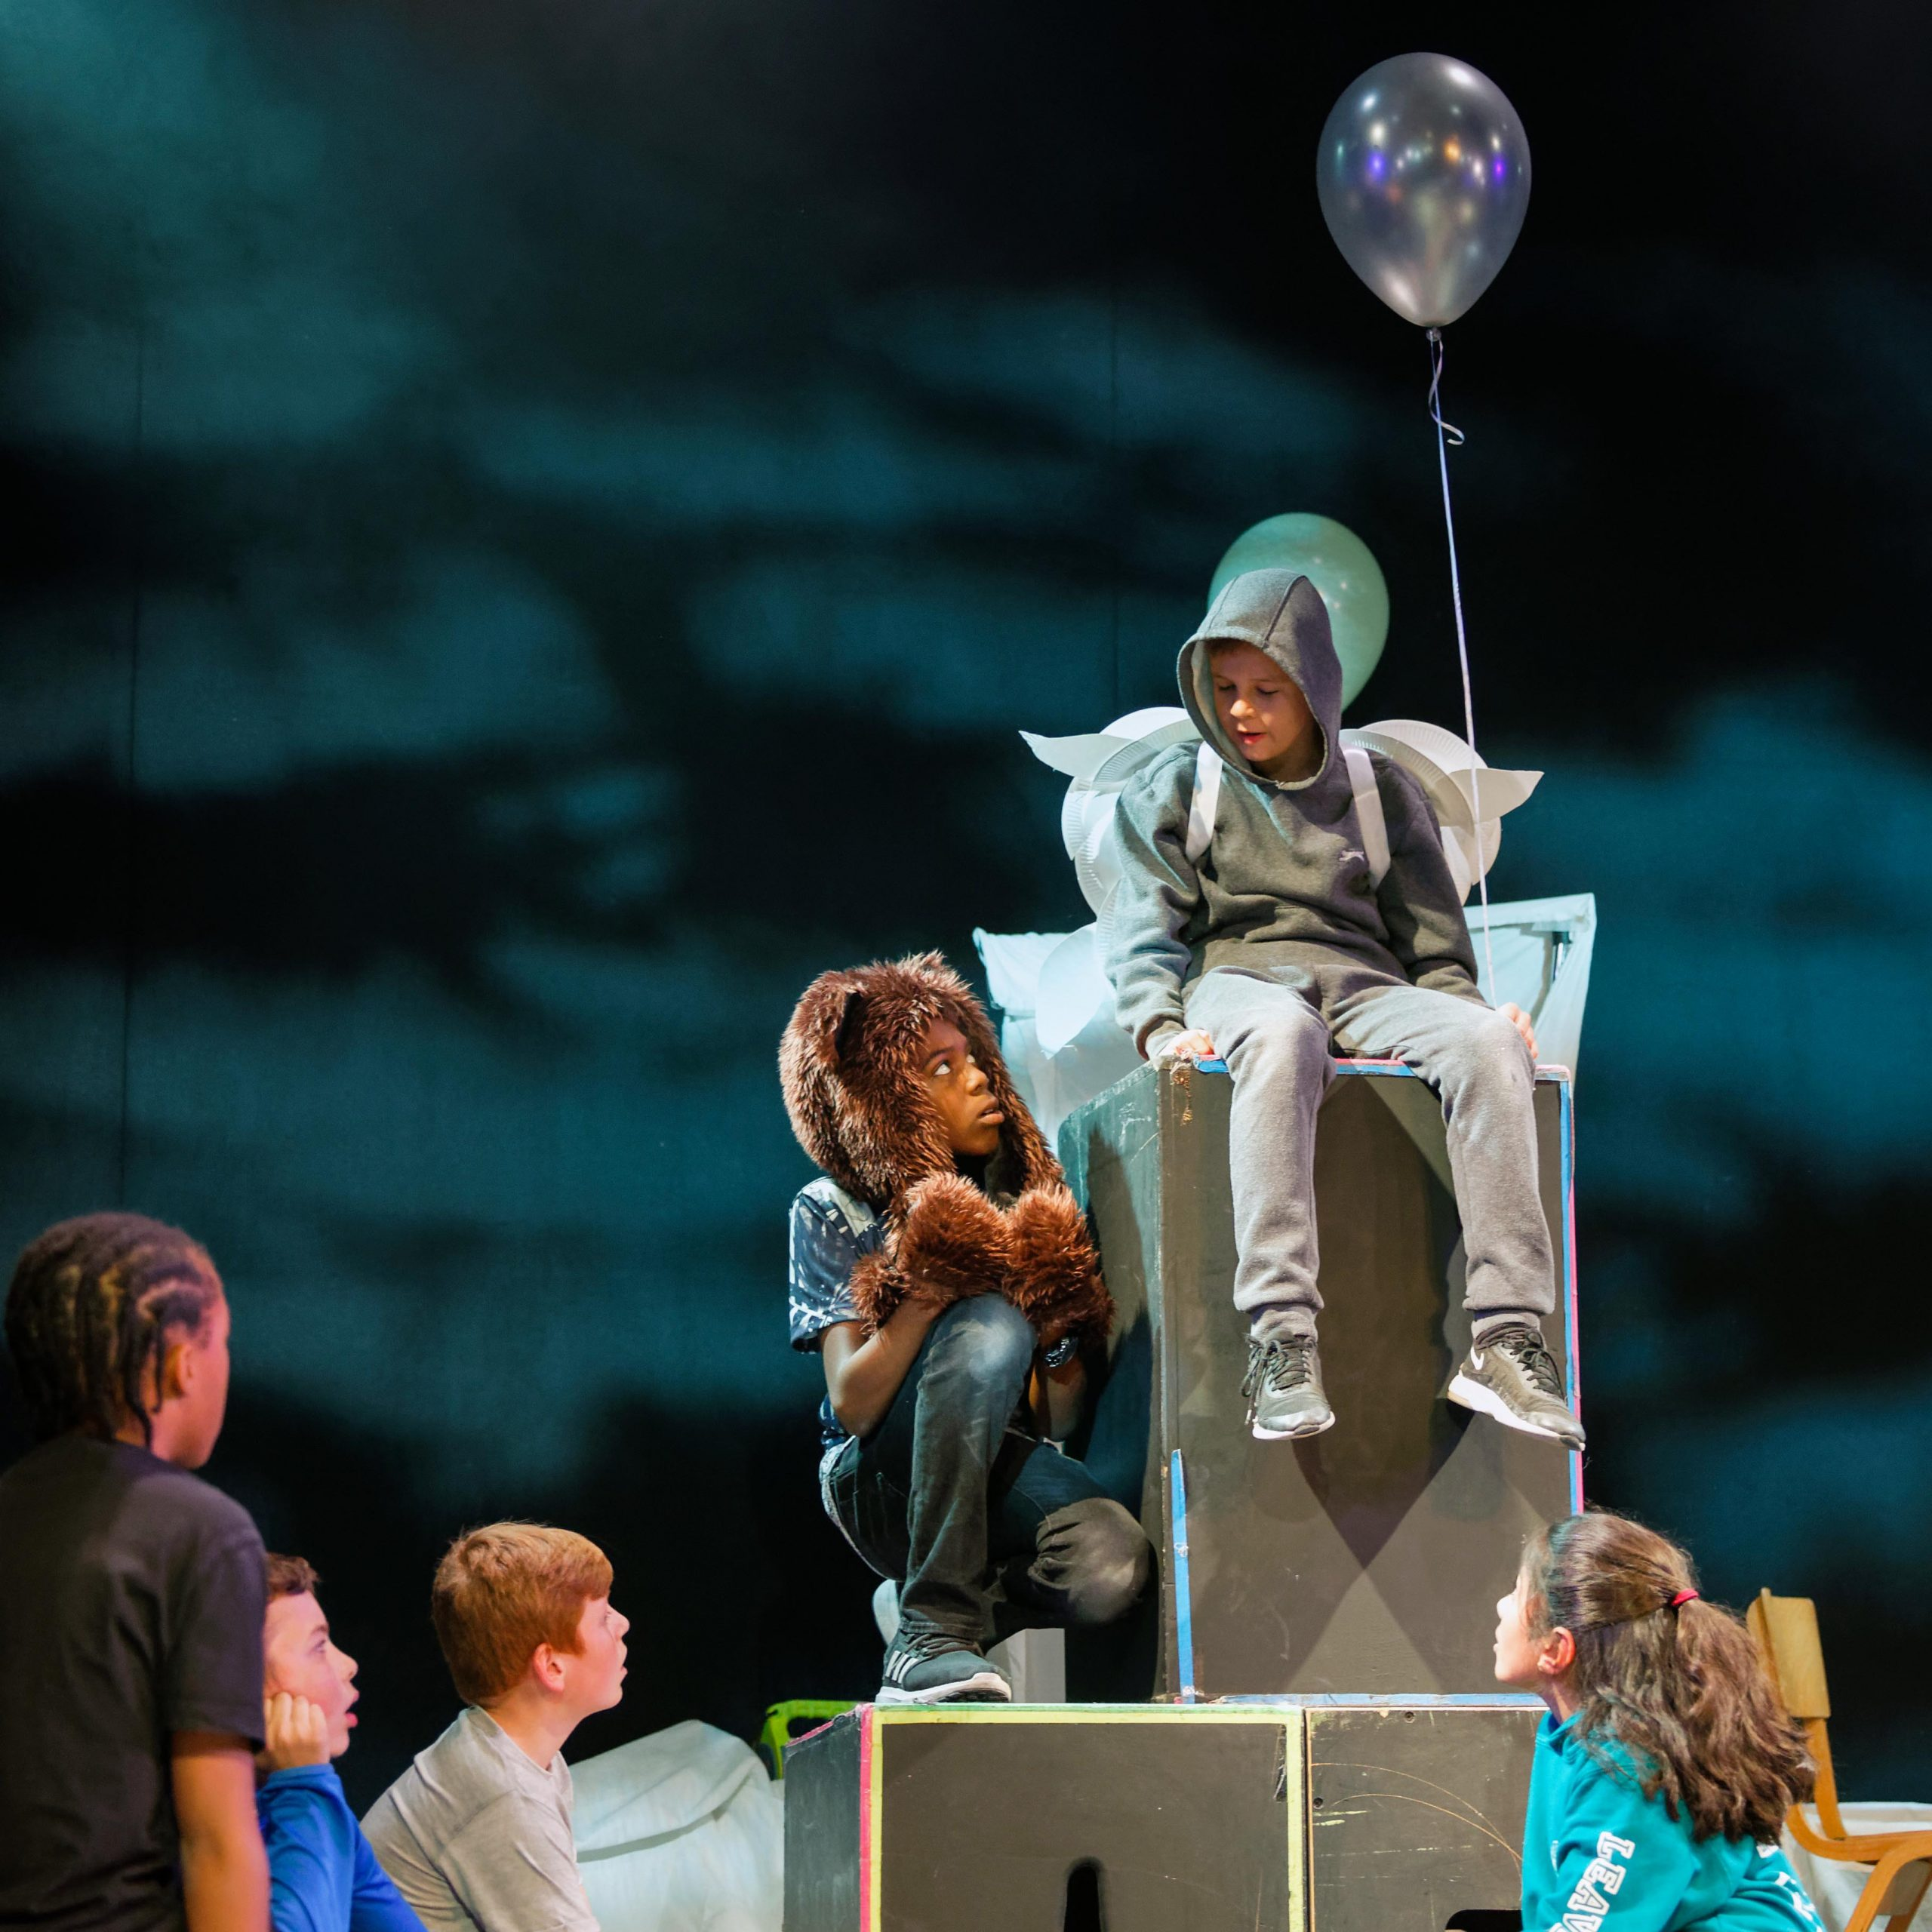 2 boys performing, one sat up on chair with ballon and the other dressed as a lion kneeling